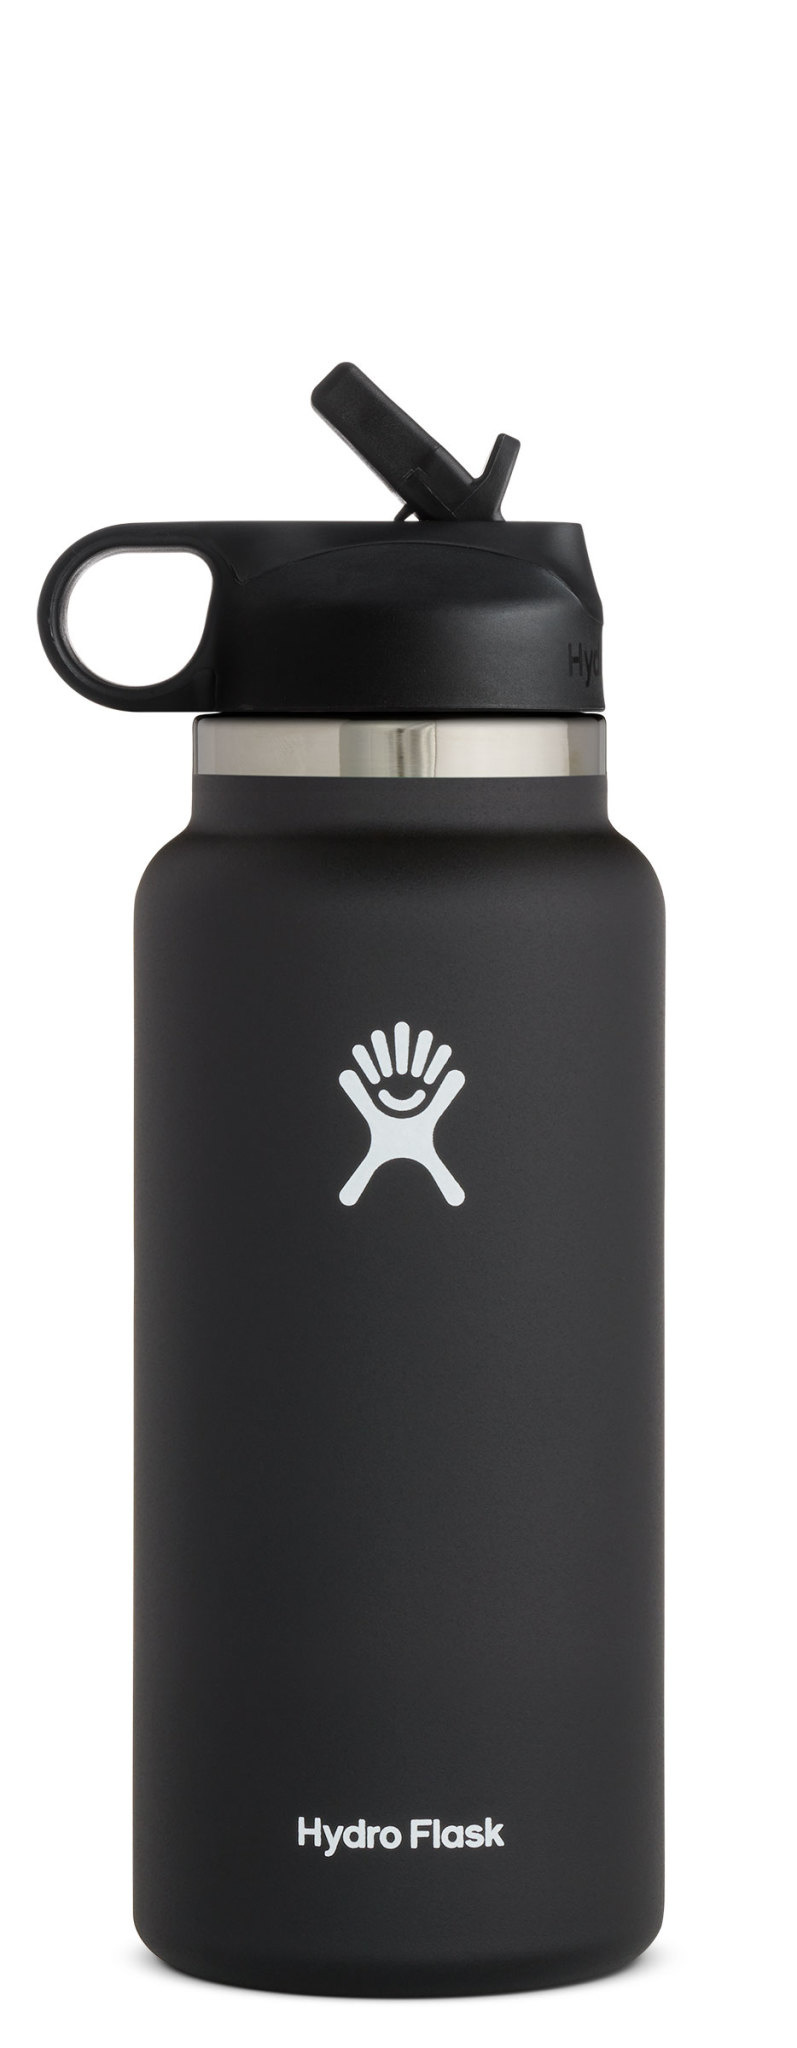 Hydro Flask 32oz Wide Mouth with Straw Lid-3